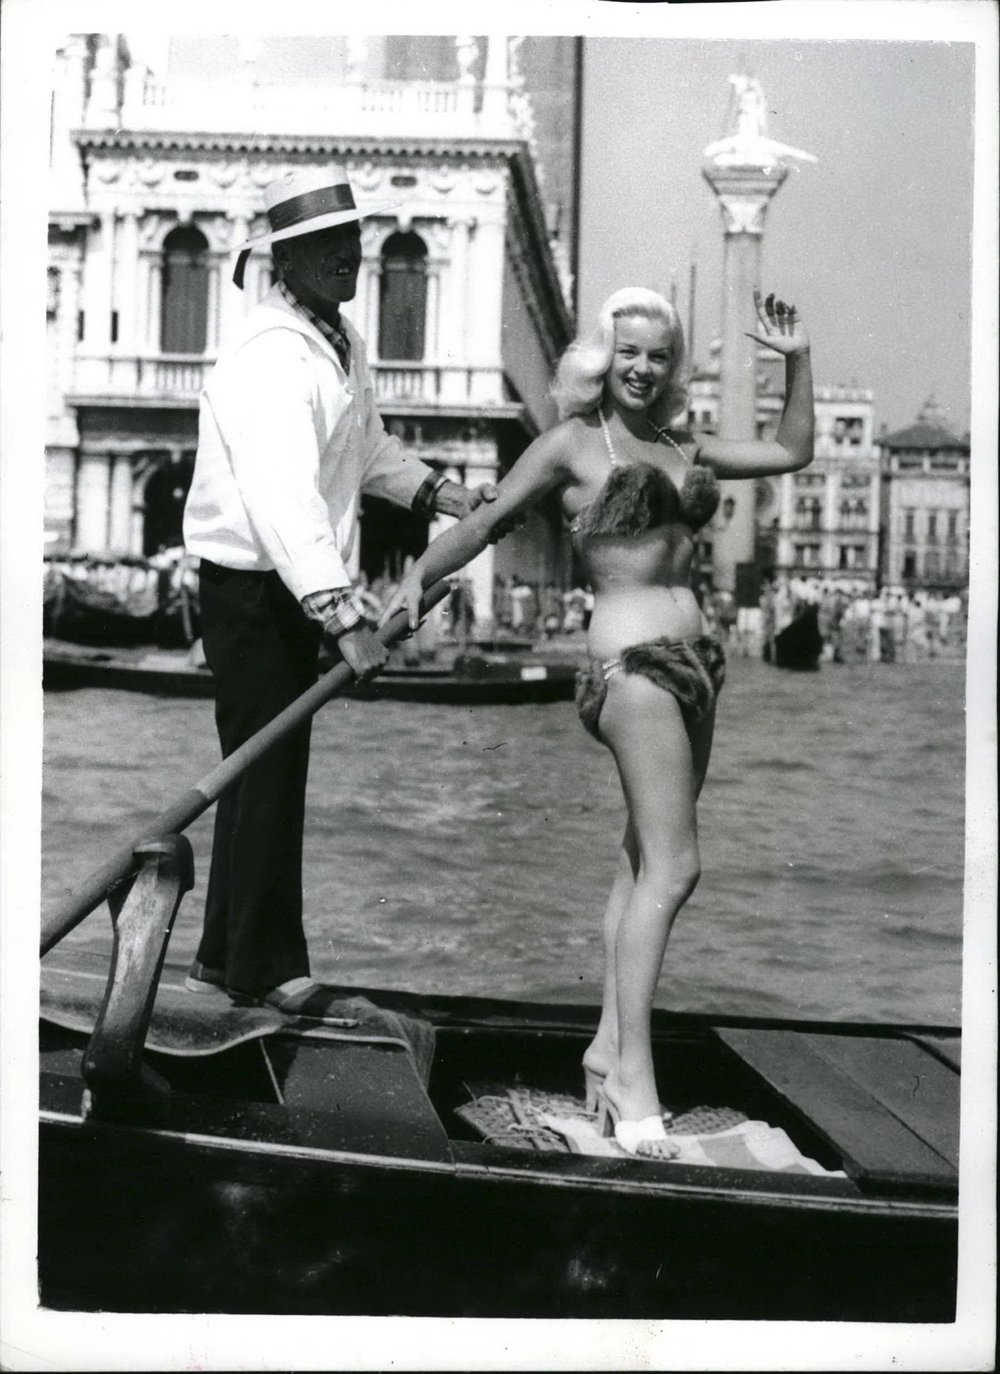 Diana Dors in her mink bikini - not terribly practical!